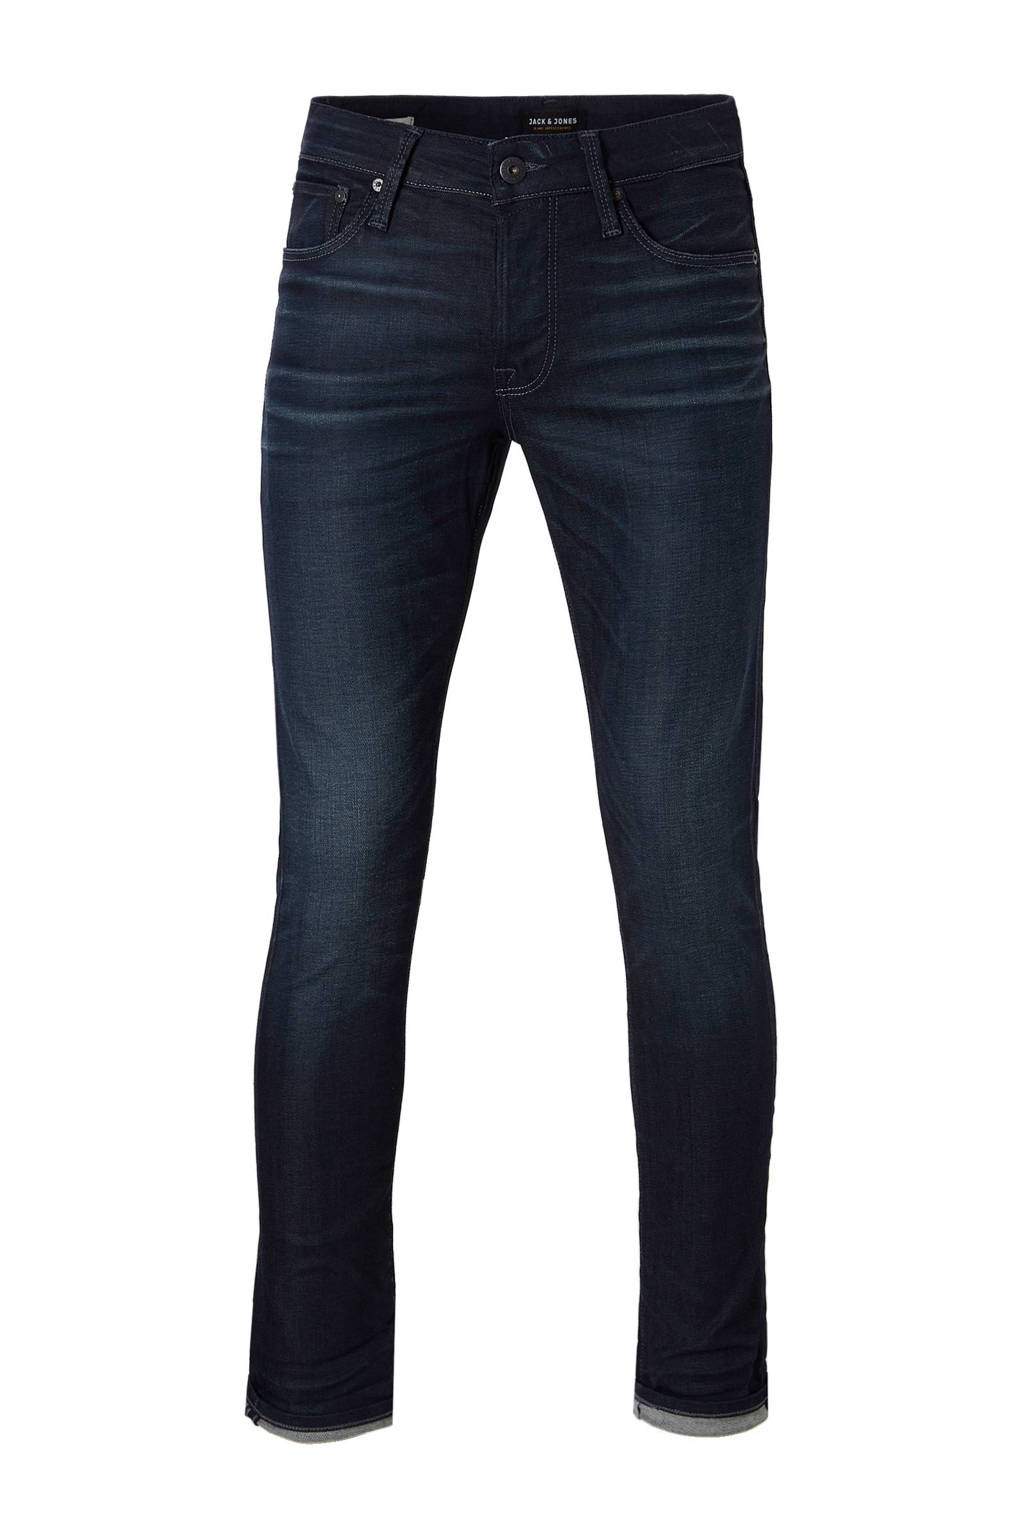 Jack & Jones Tim slim fit jeans, 120 Blue Denim